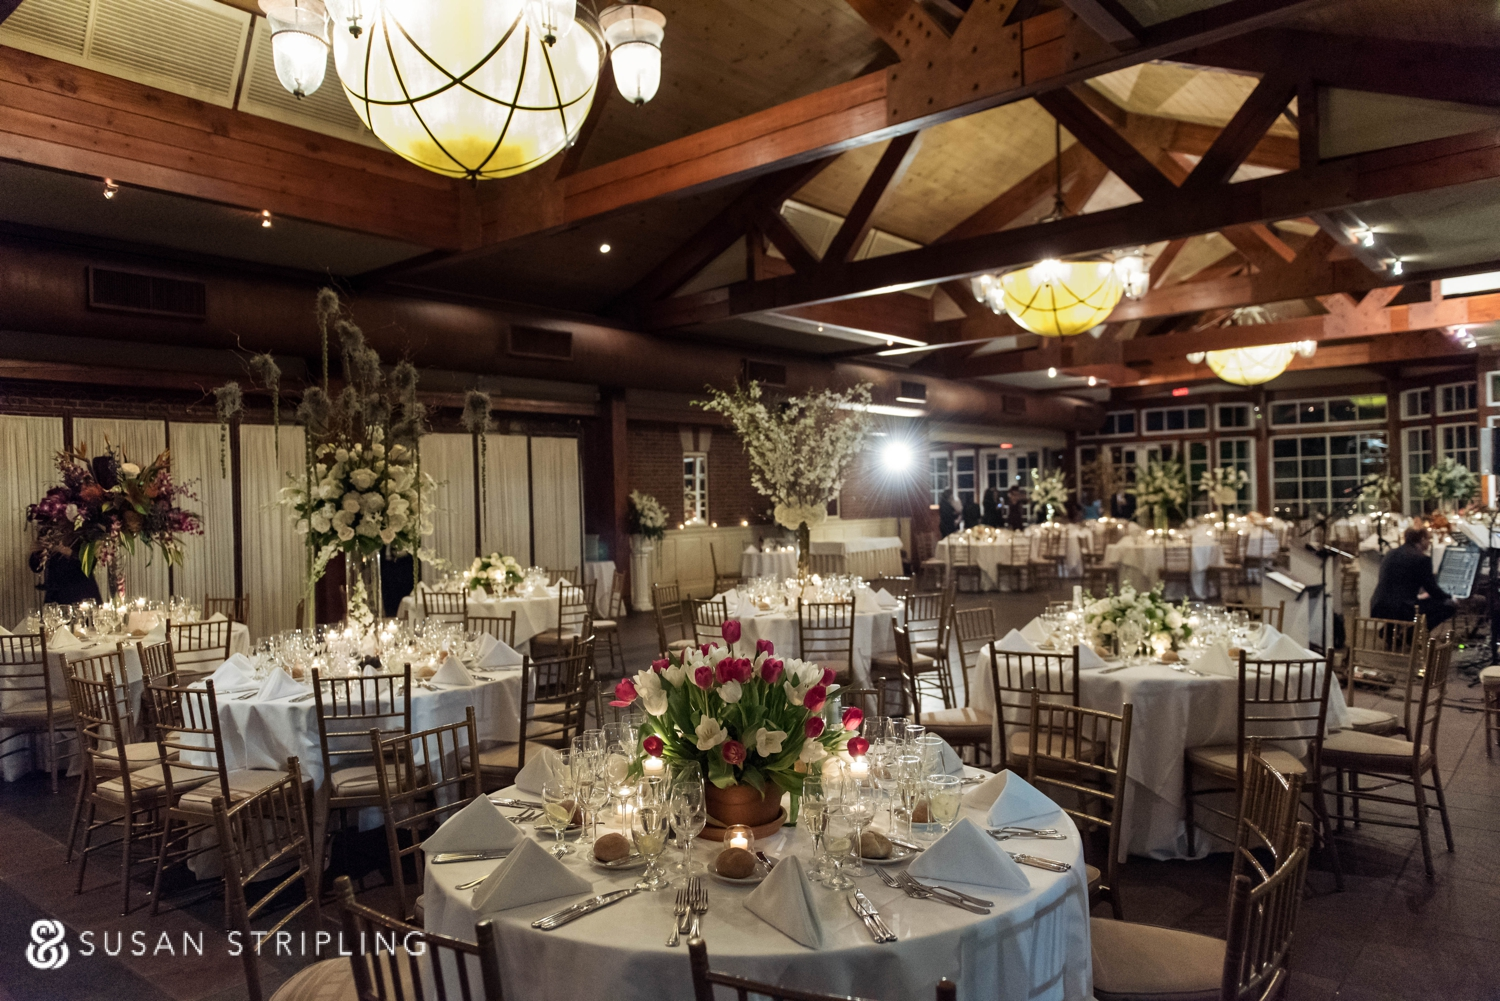 Susan Stripling PhotographyWedding At The Central Park Boathouse